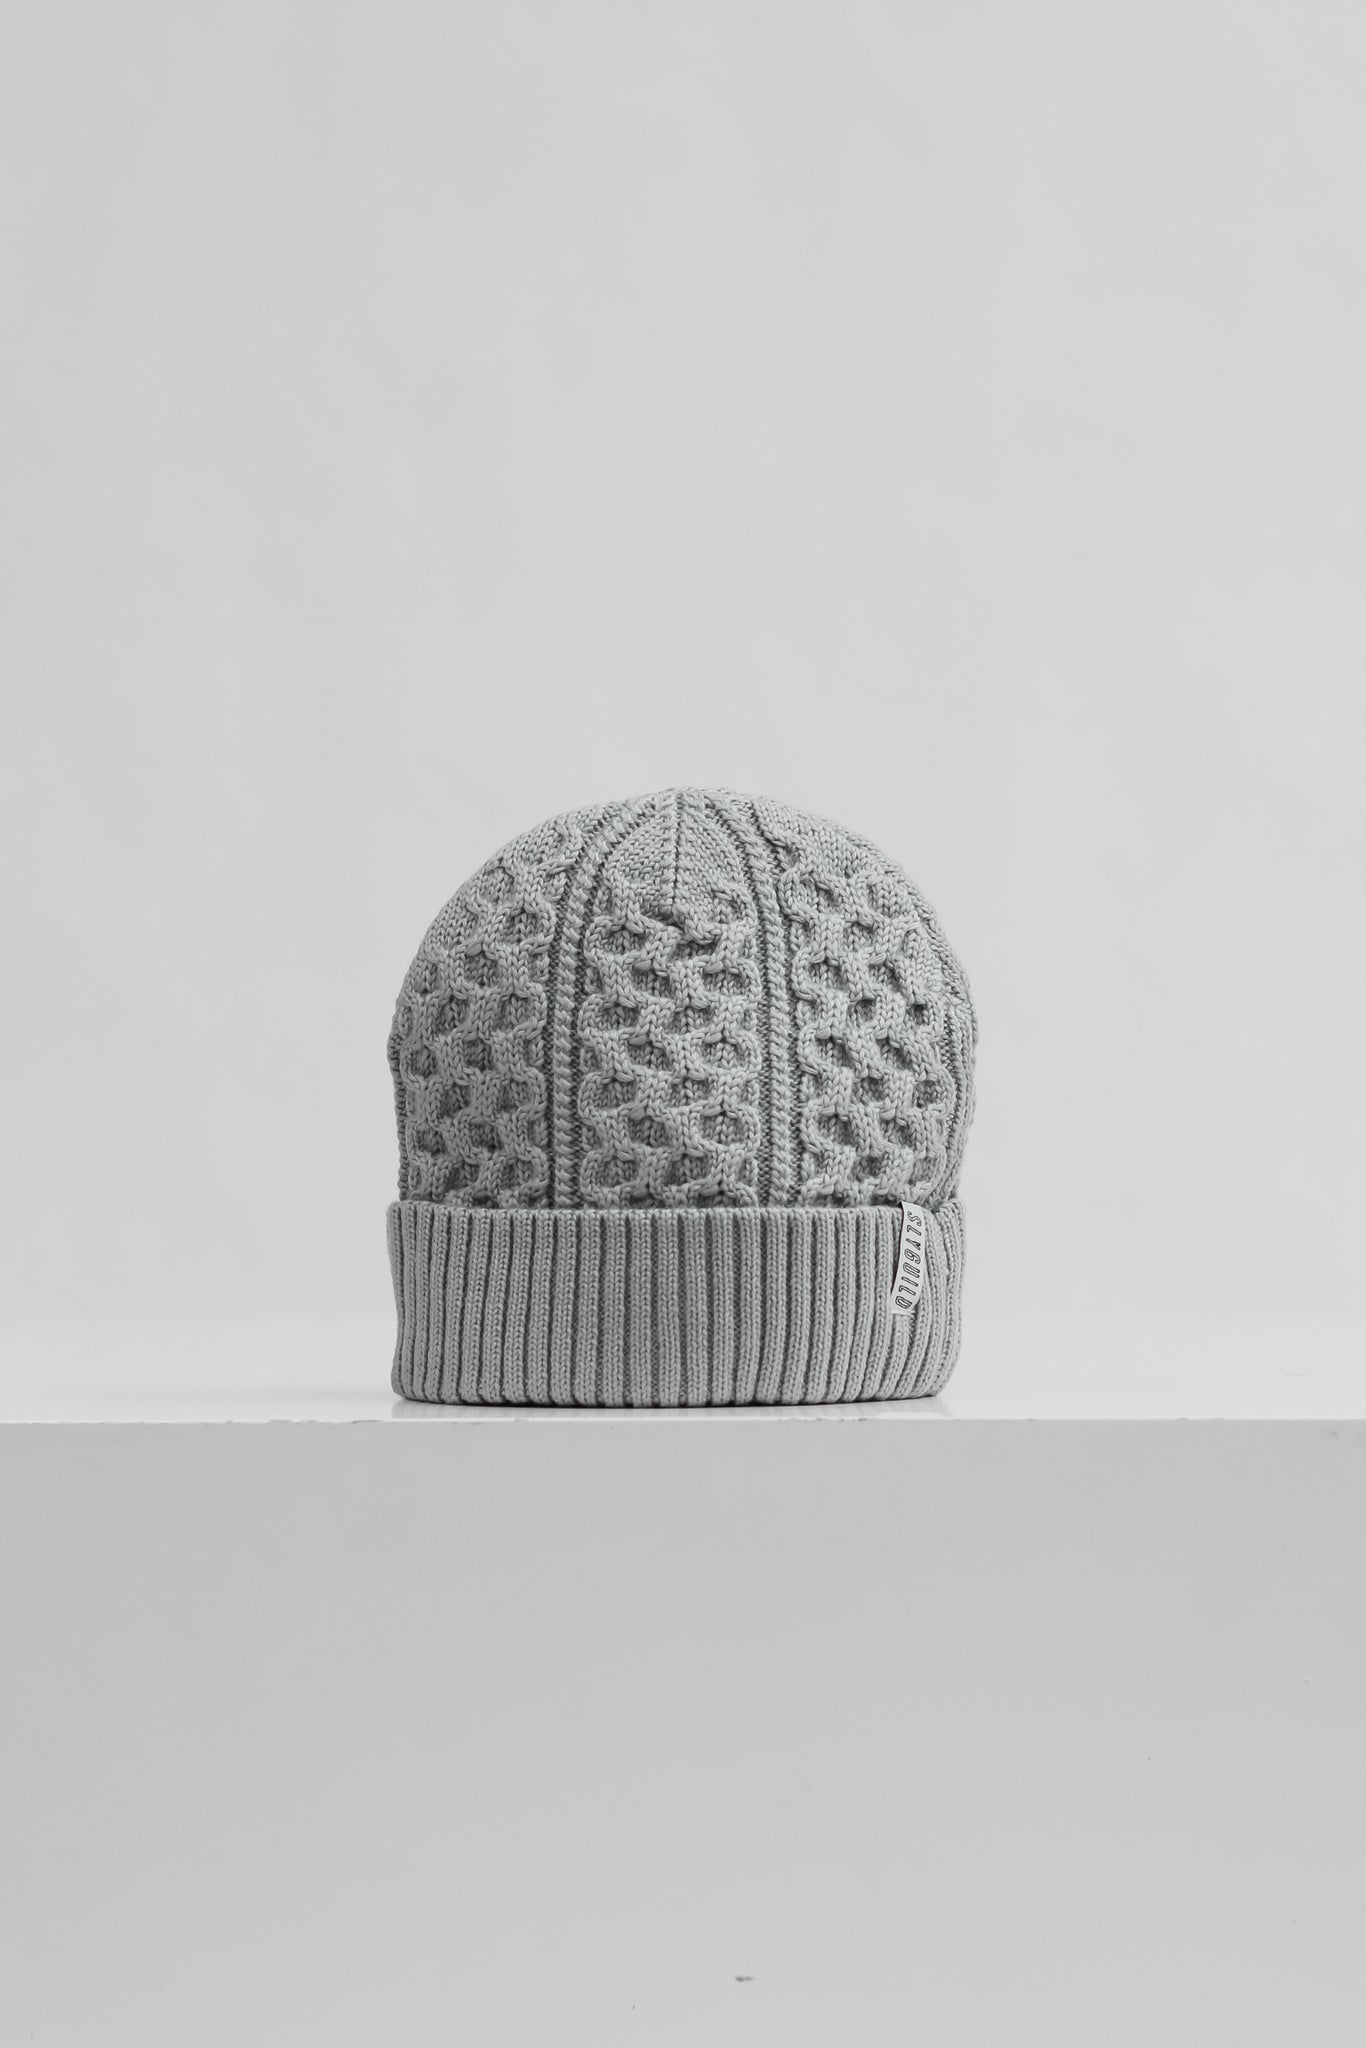 Sly Guild Grey Cable knit beanie - Winter